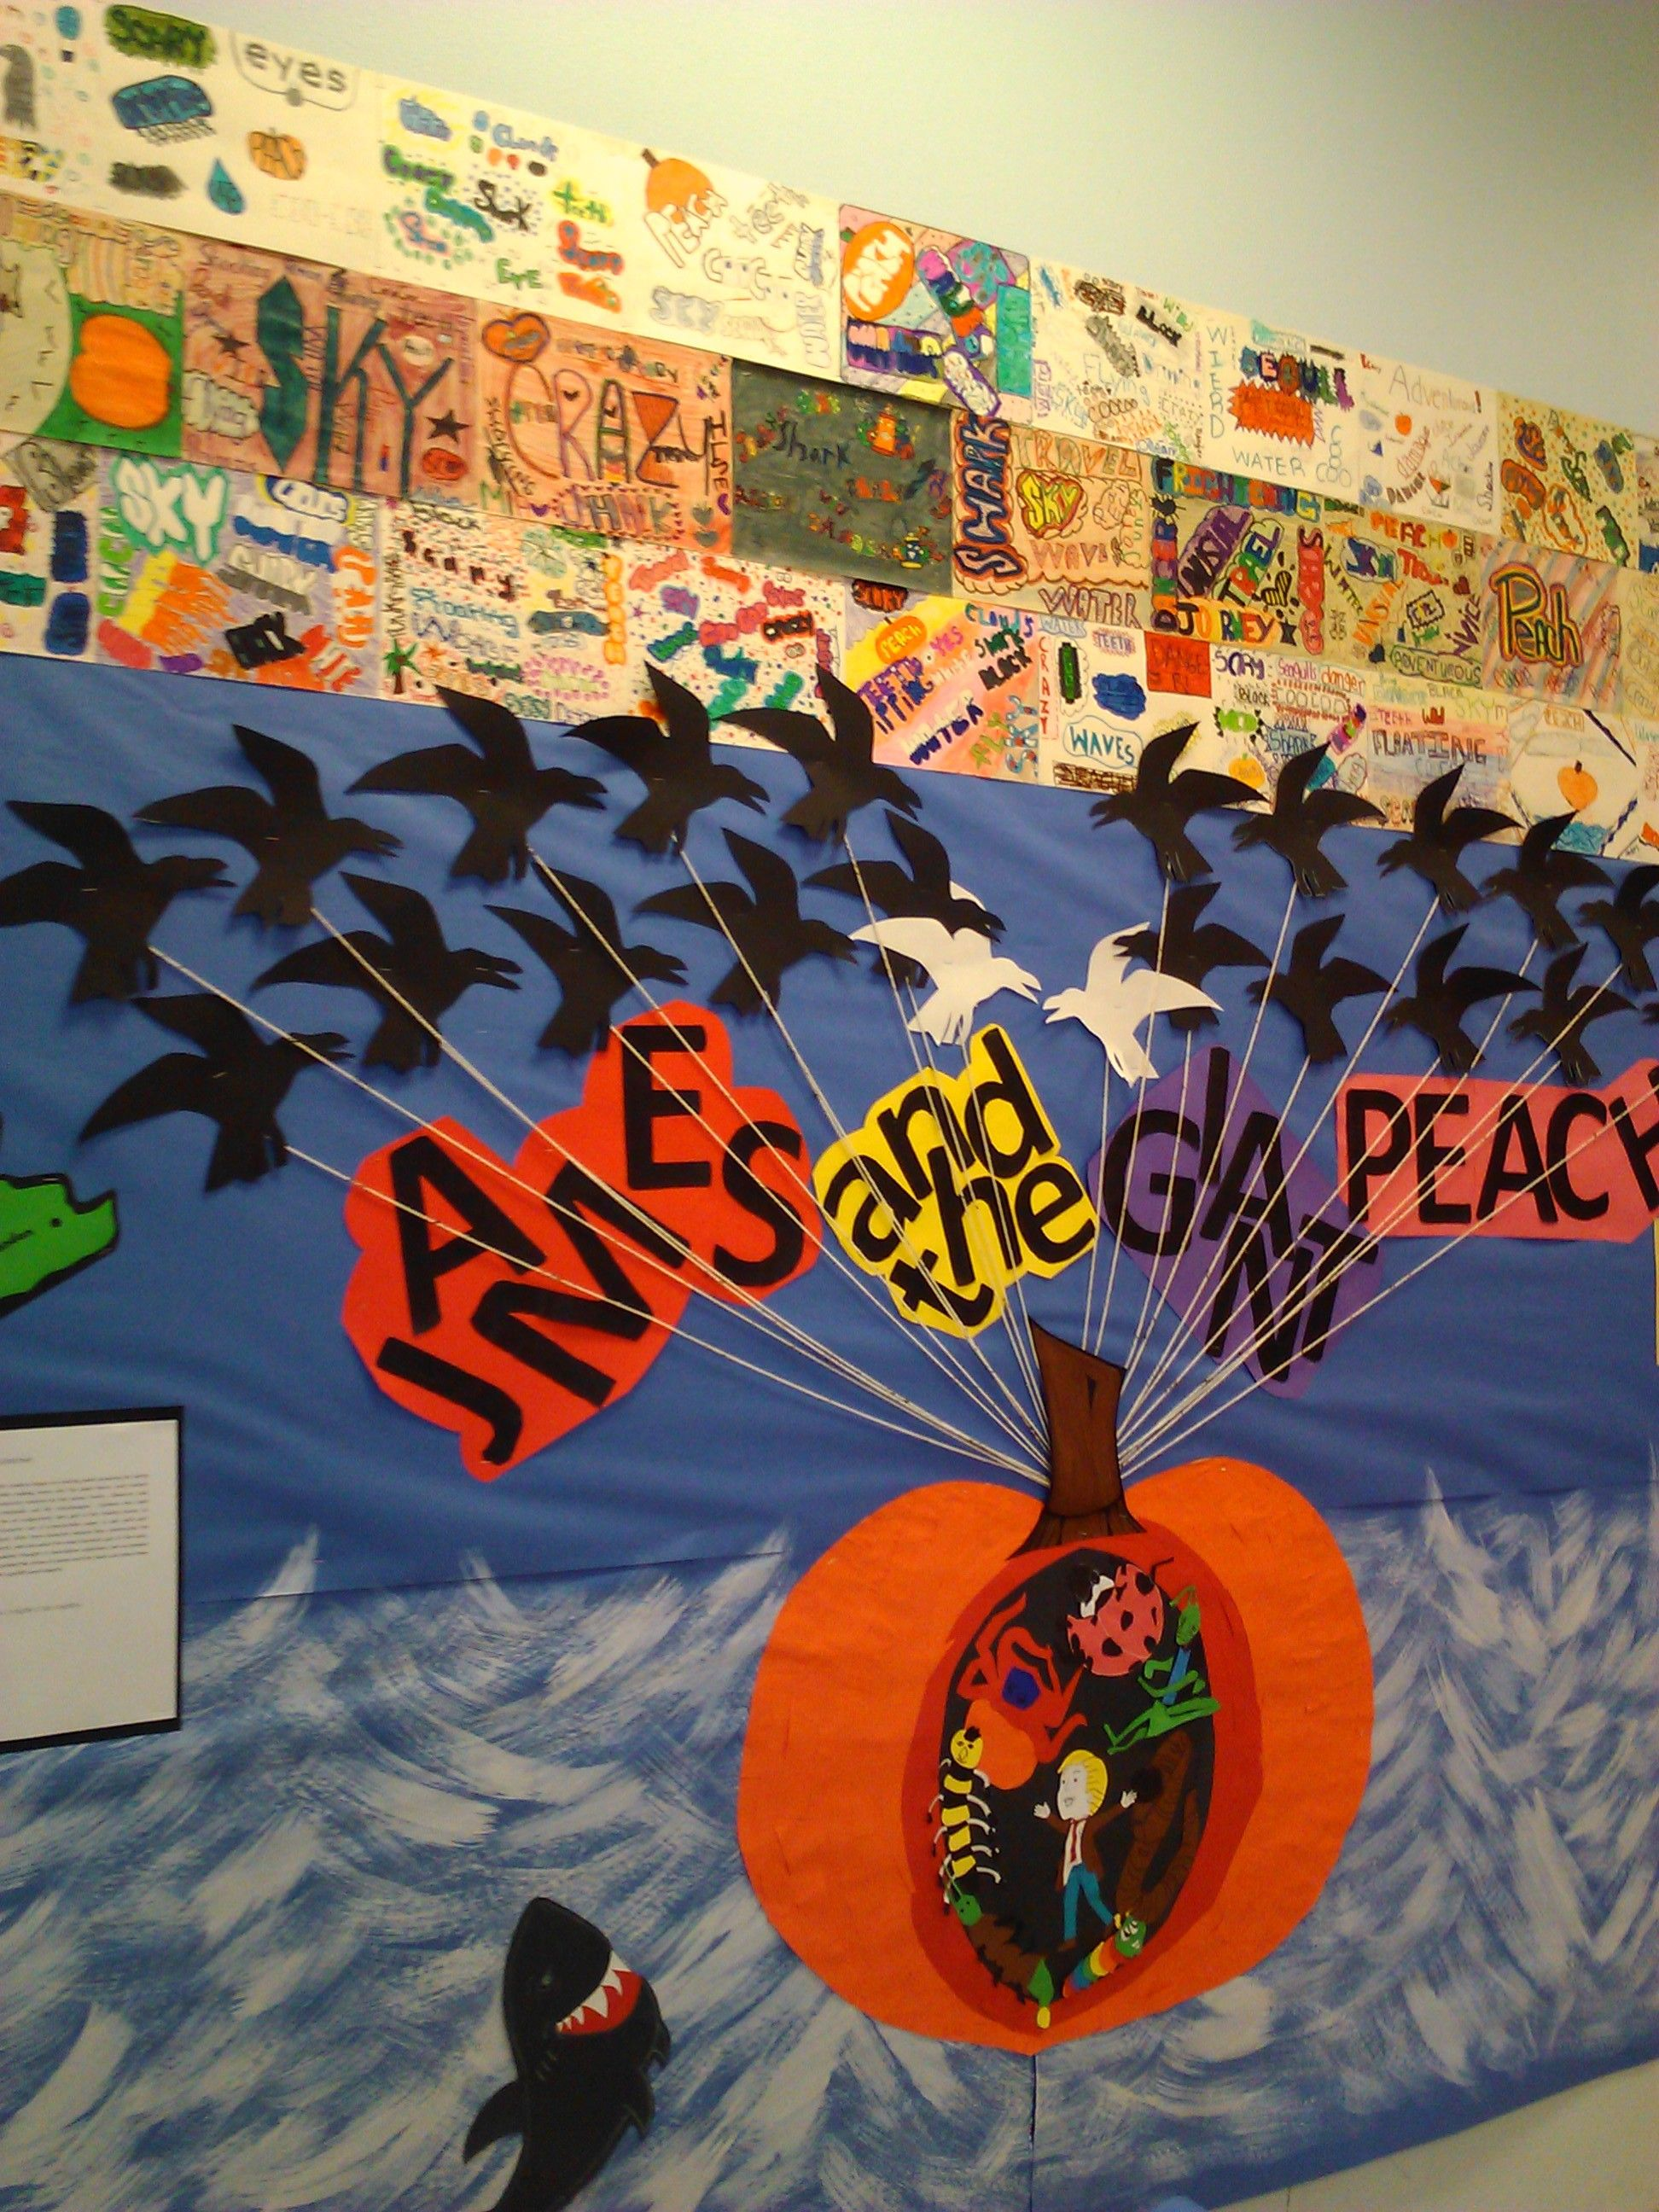 James And The Giant Peach Bulletin Board Cool Idea To Have Peach Cut Out So Characters Can Be